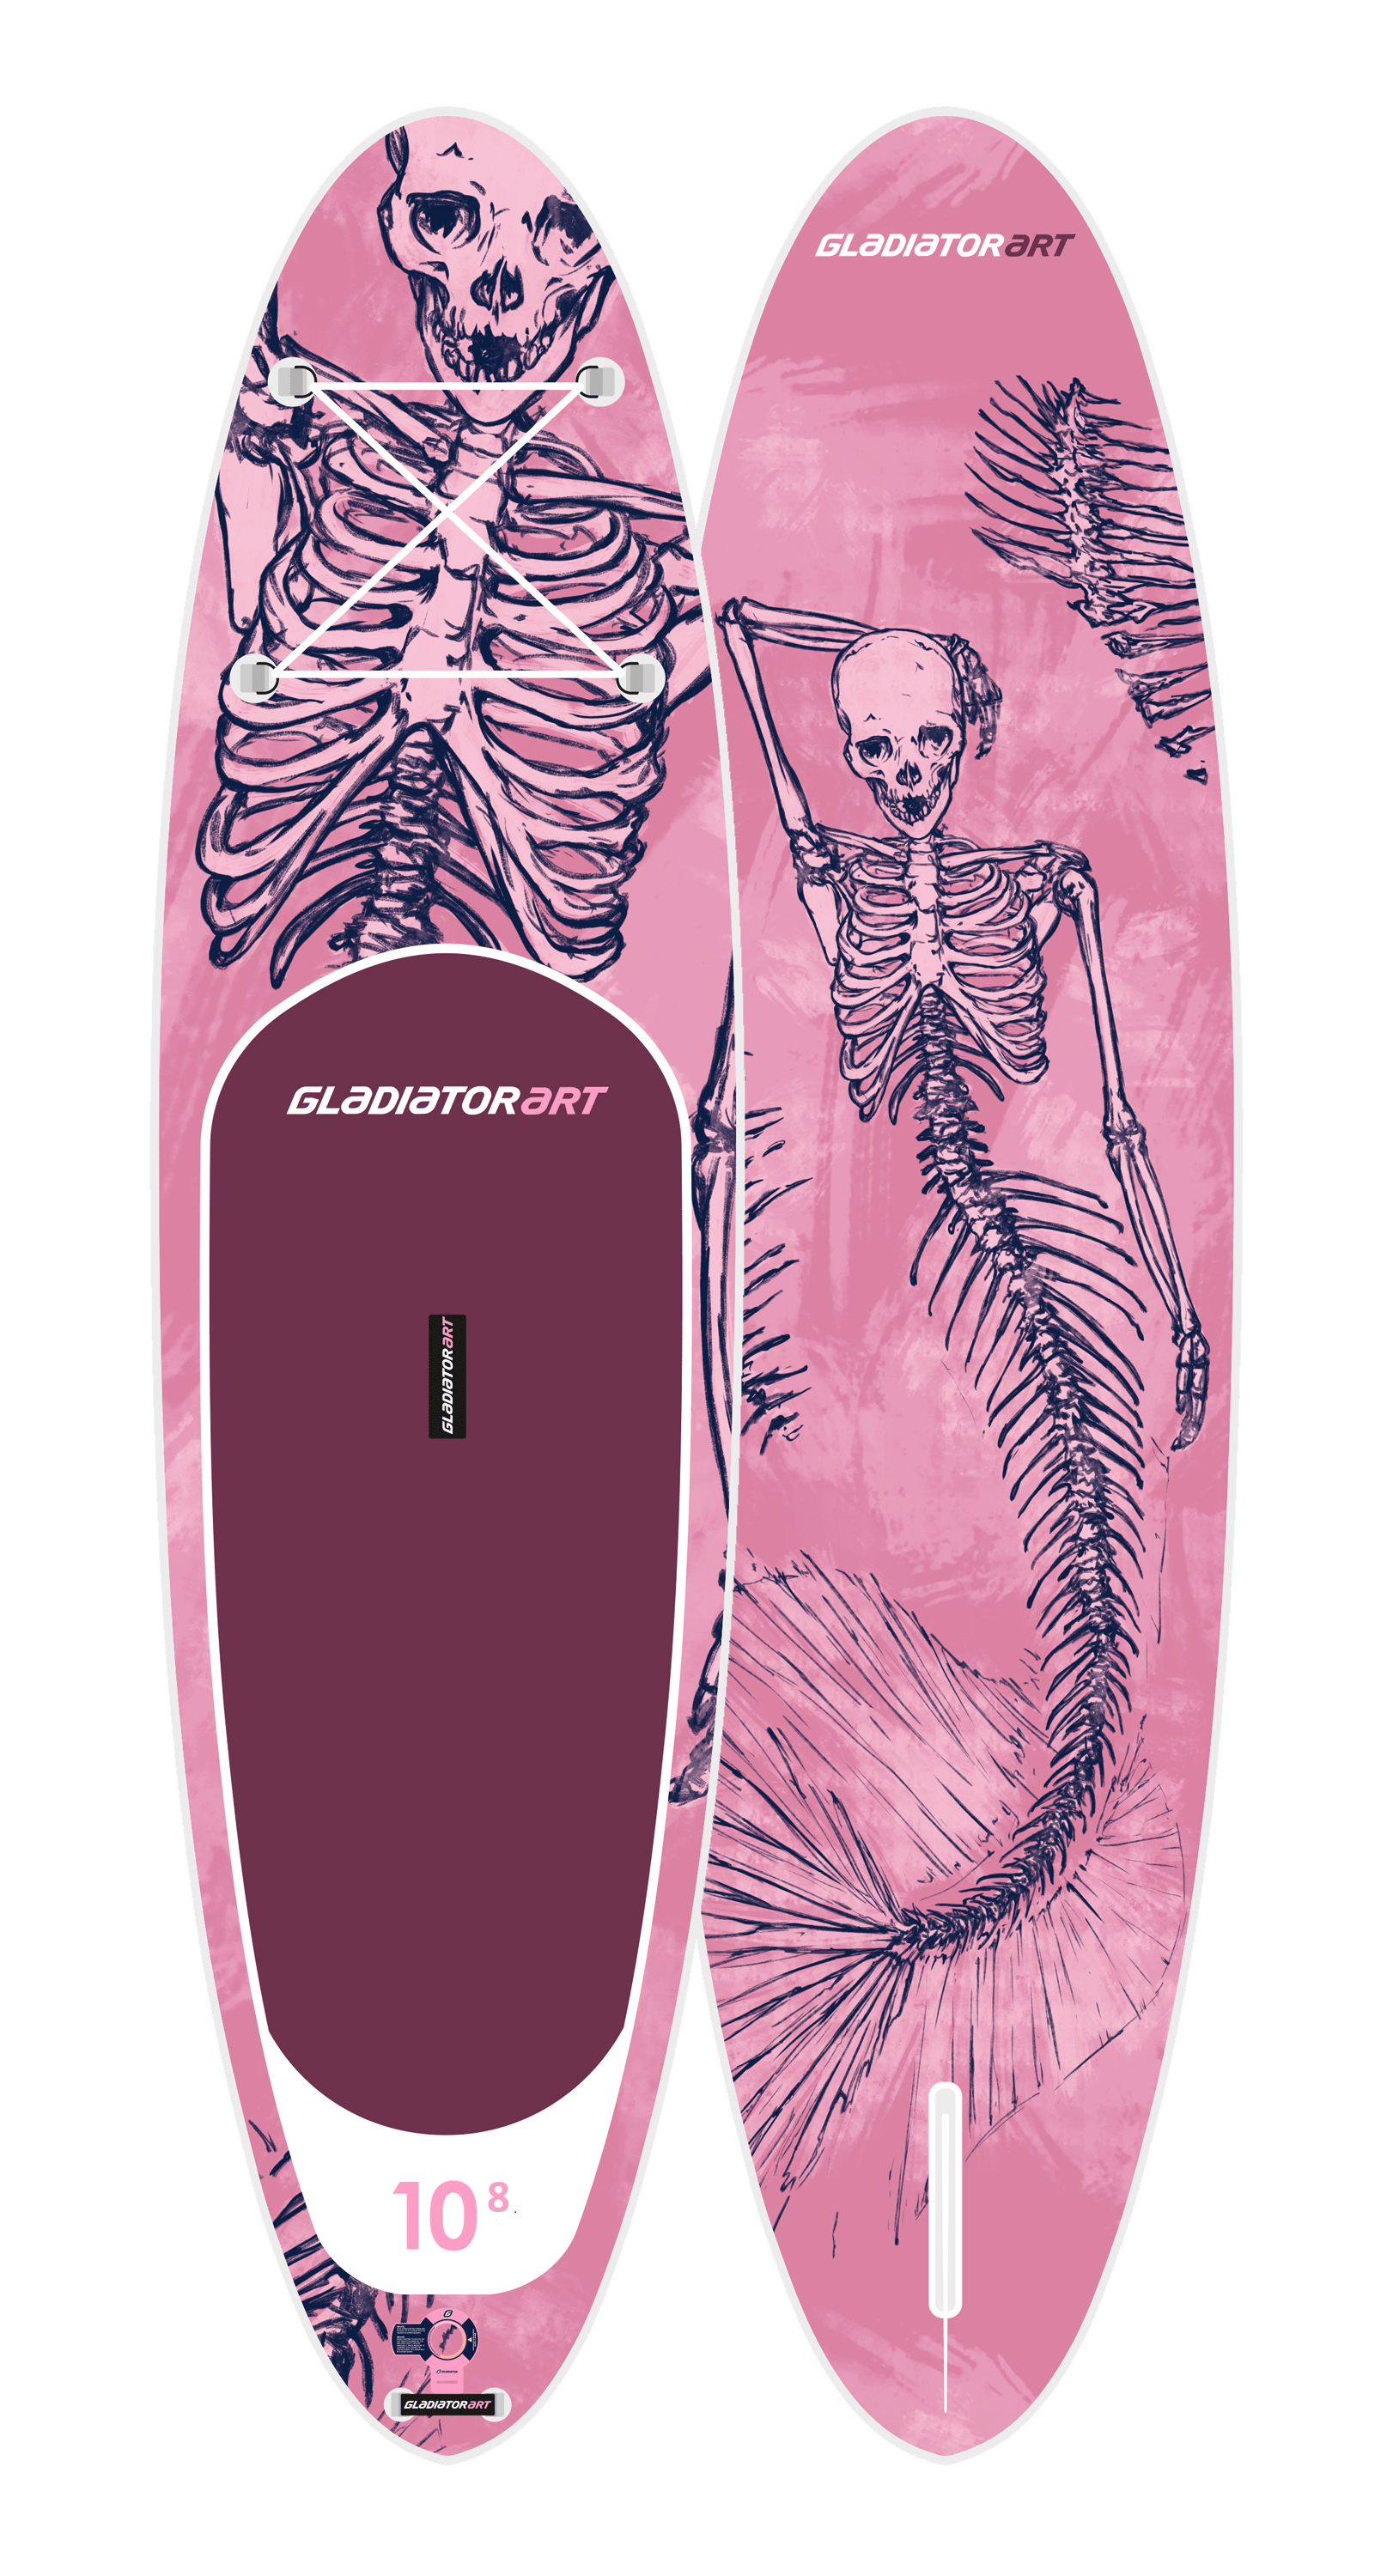 Надувной SUP борд GLADIATOR ART MERMAID 10.8